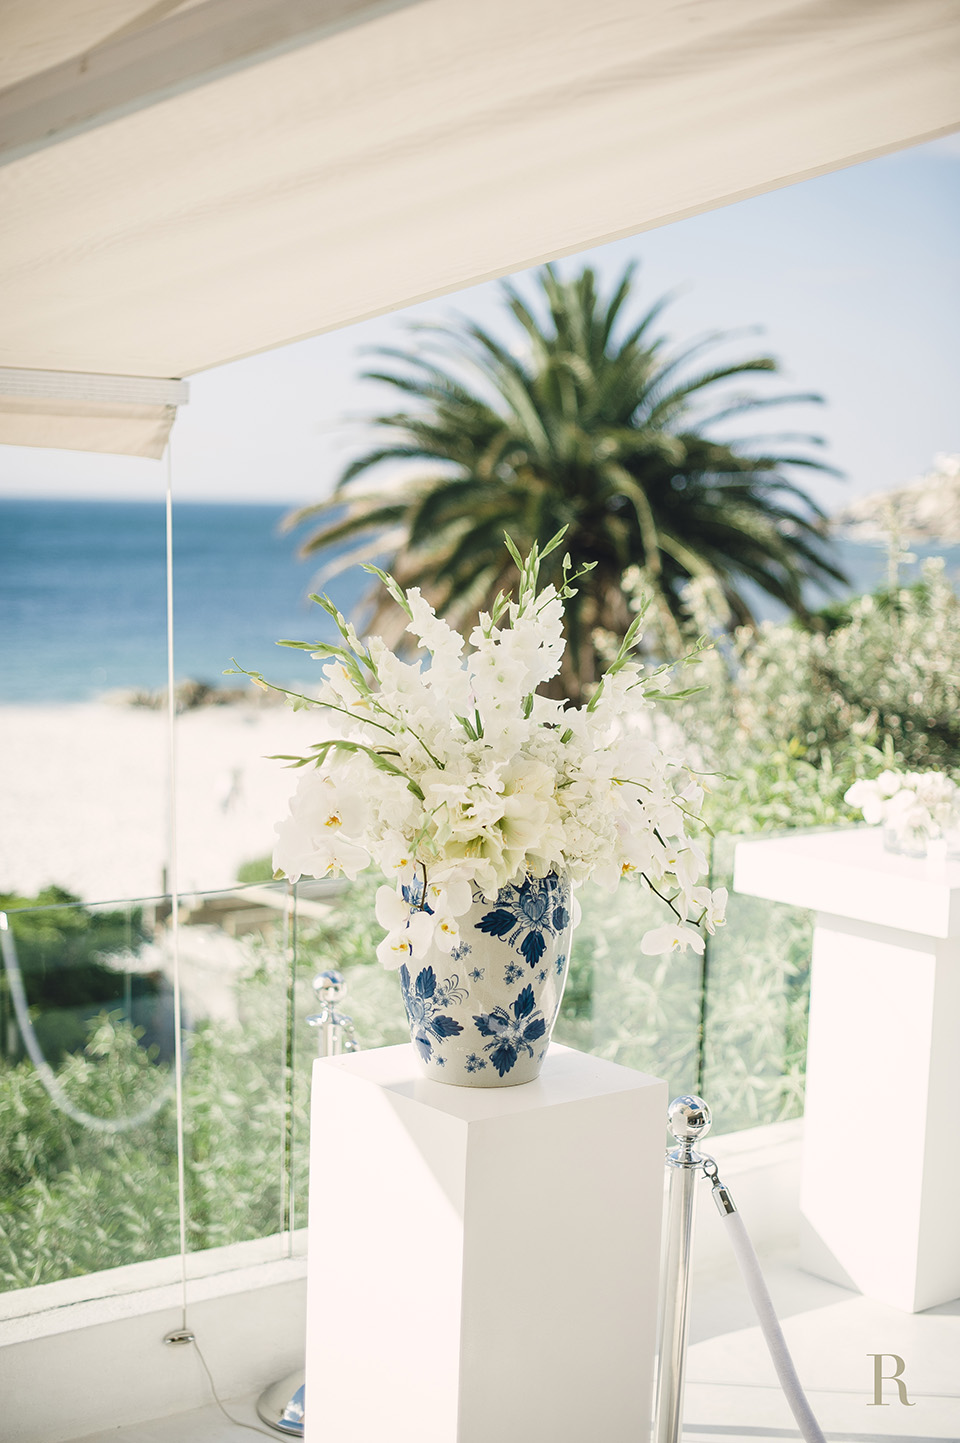 RYAN PARKER_WEDDING PHOTOGRAPHER_CAPE TOWN_CLIFTON_VANILLA ICE_AMAZING SPACES_WEDDING_D&A DSC_5257.jpg